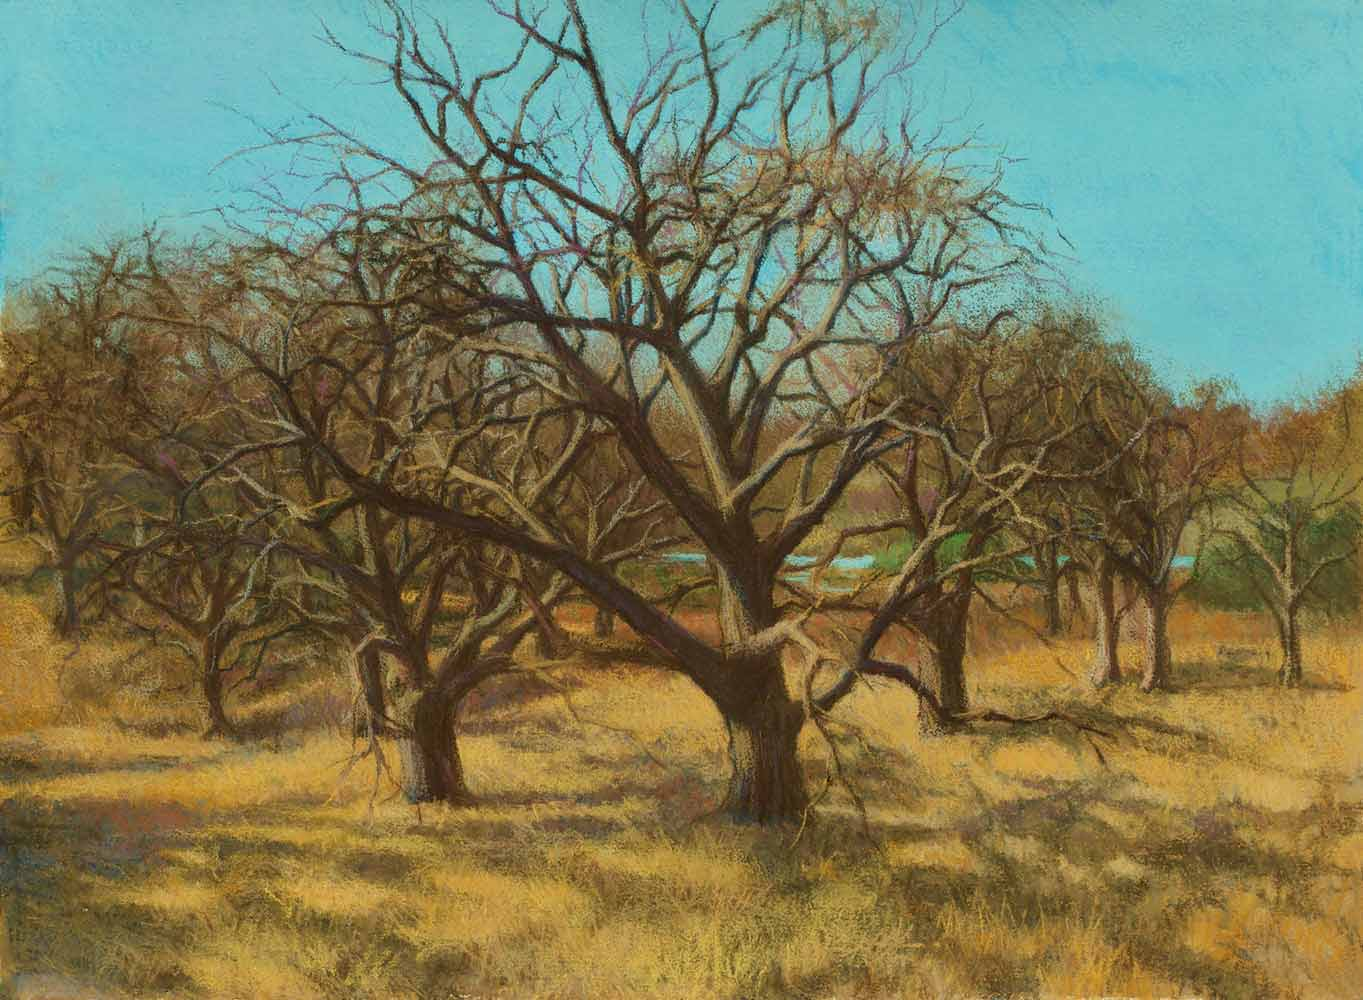 Bare Trees 22x30, pastel by Promessi